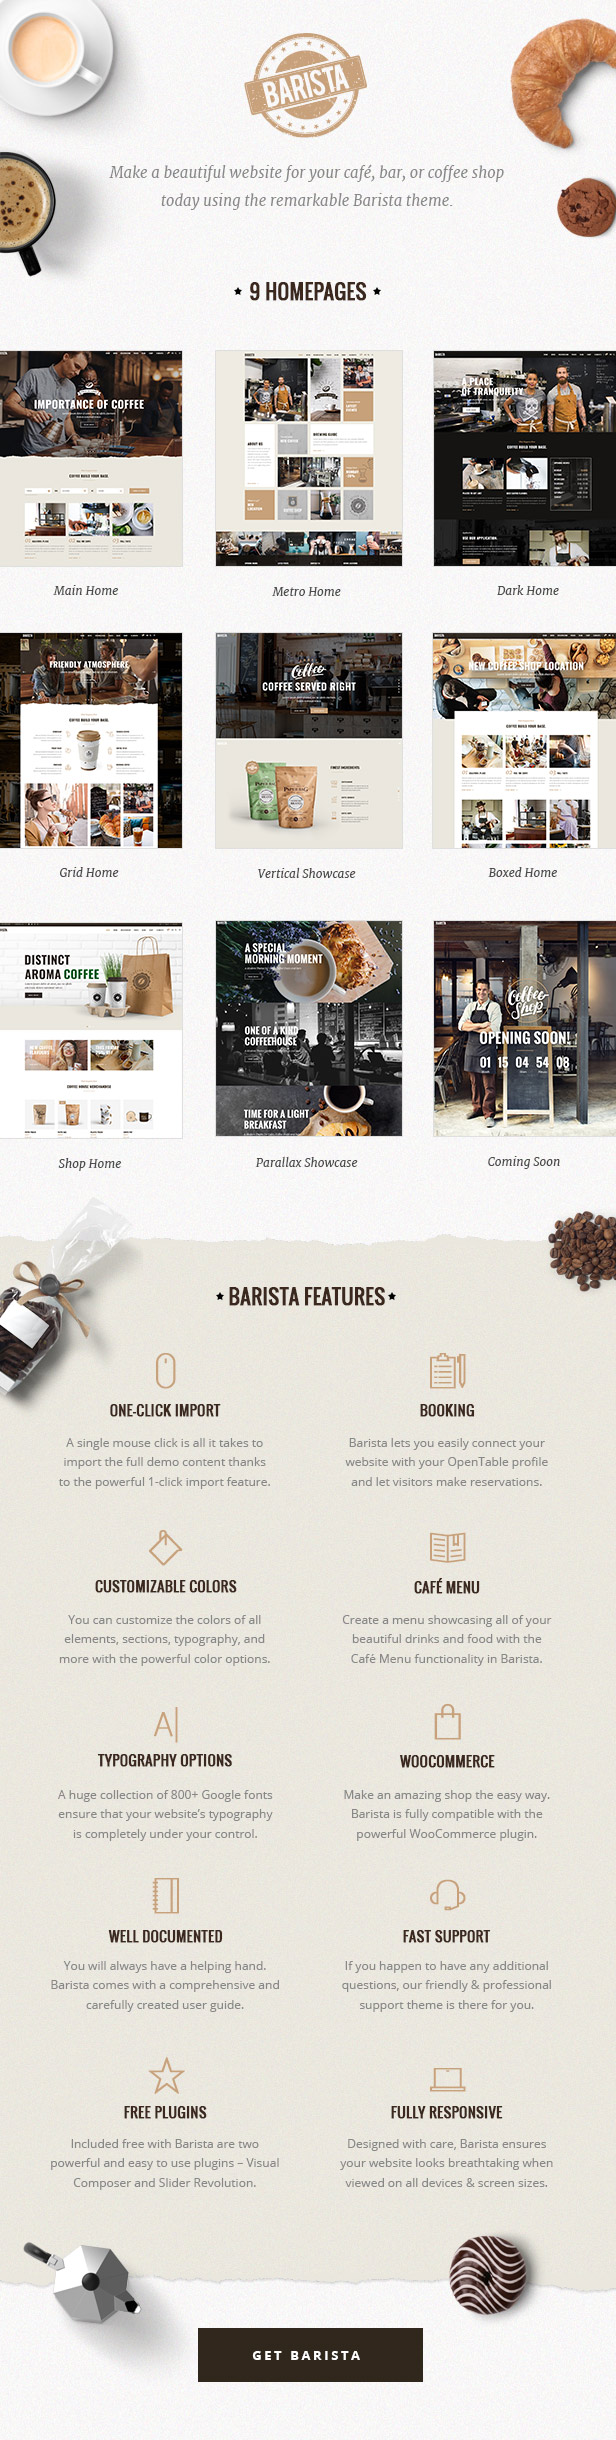 Barista - Modern Theme for Cafes, Coffee Shops and Bars - 1